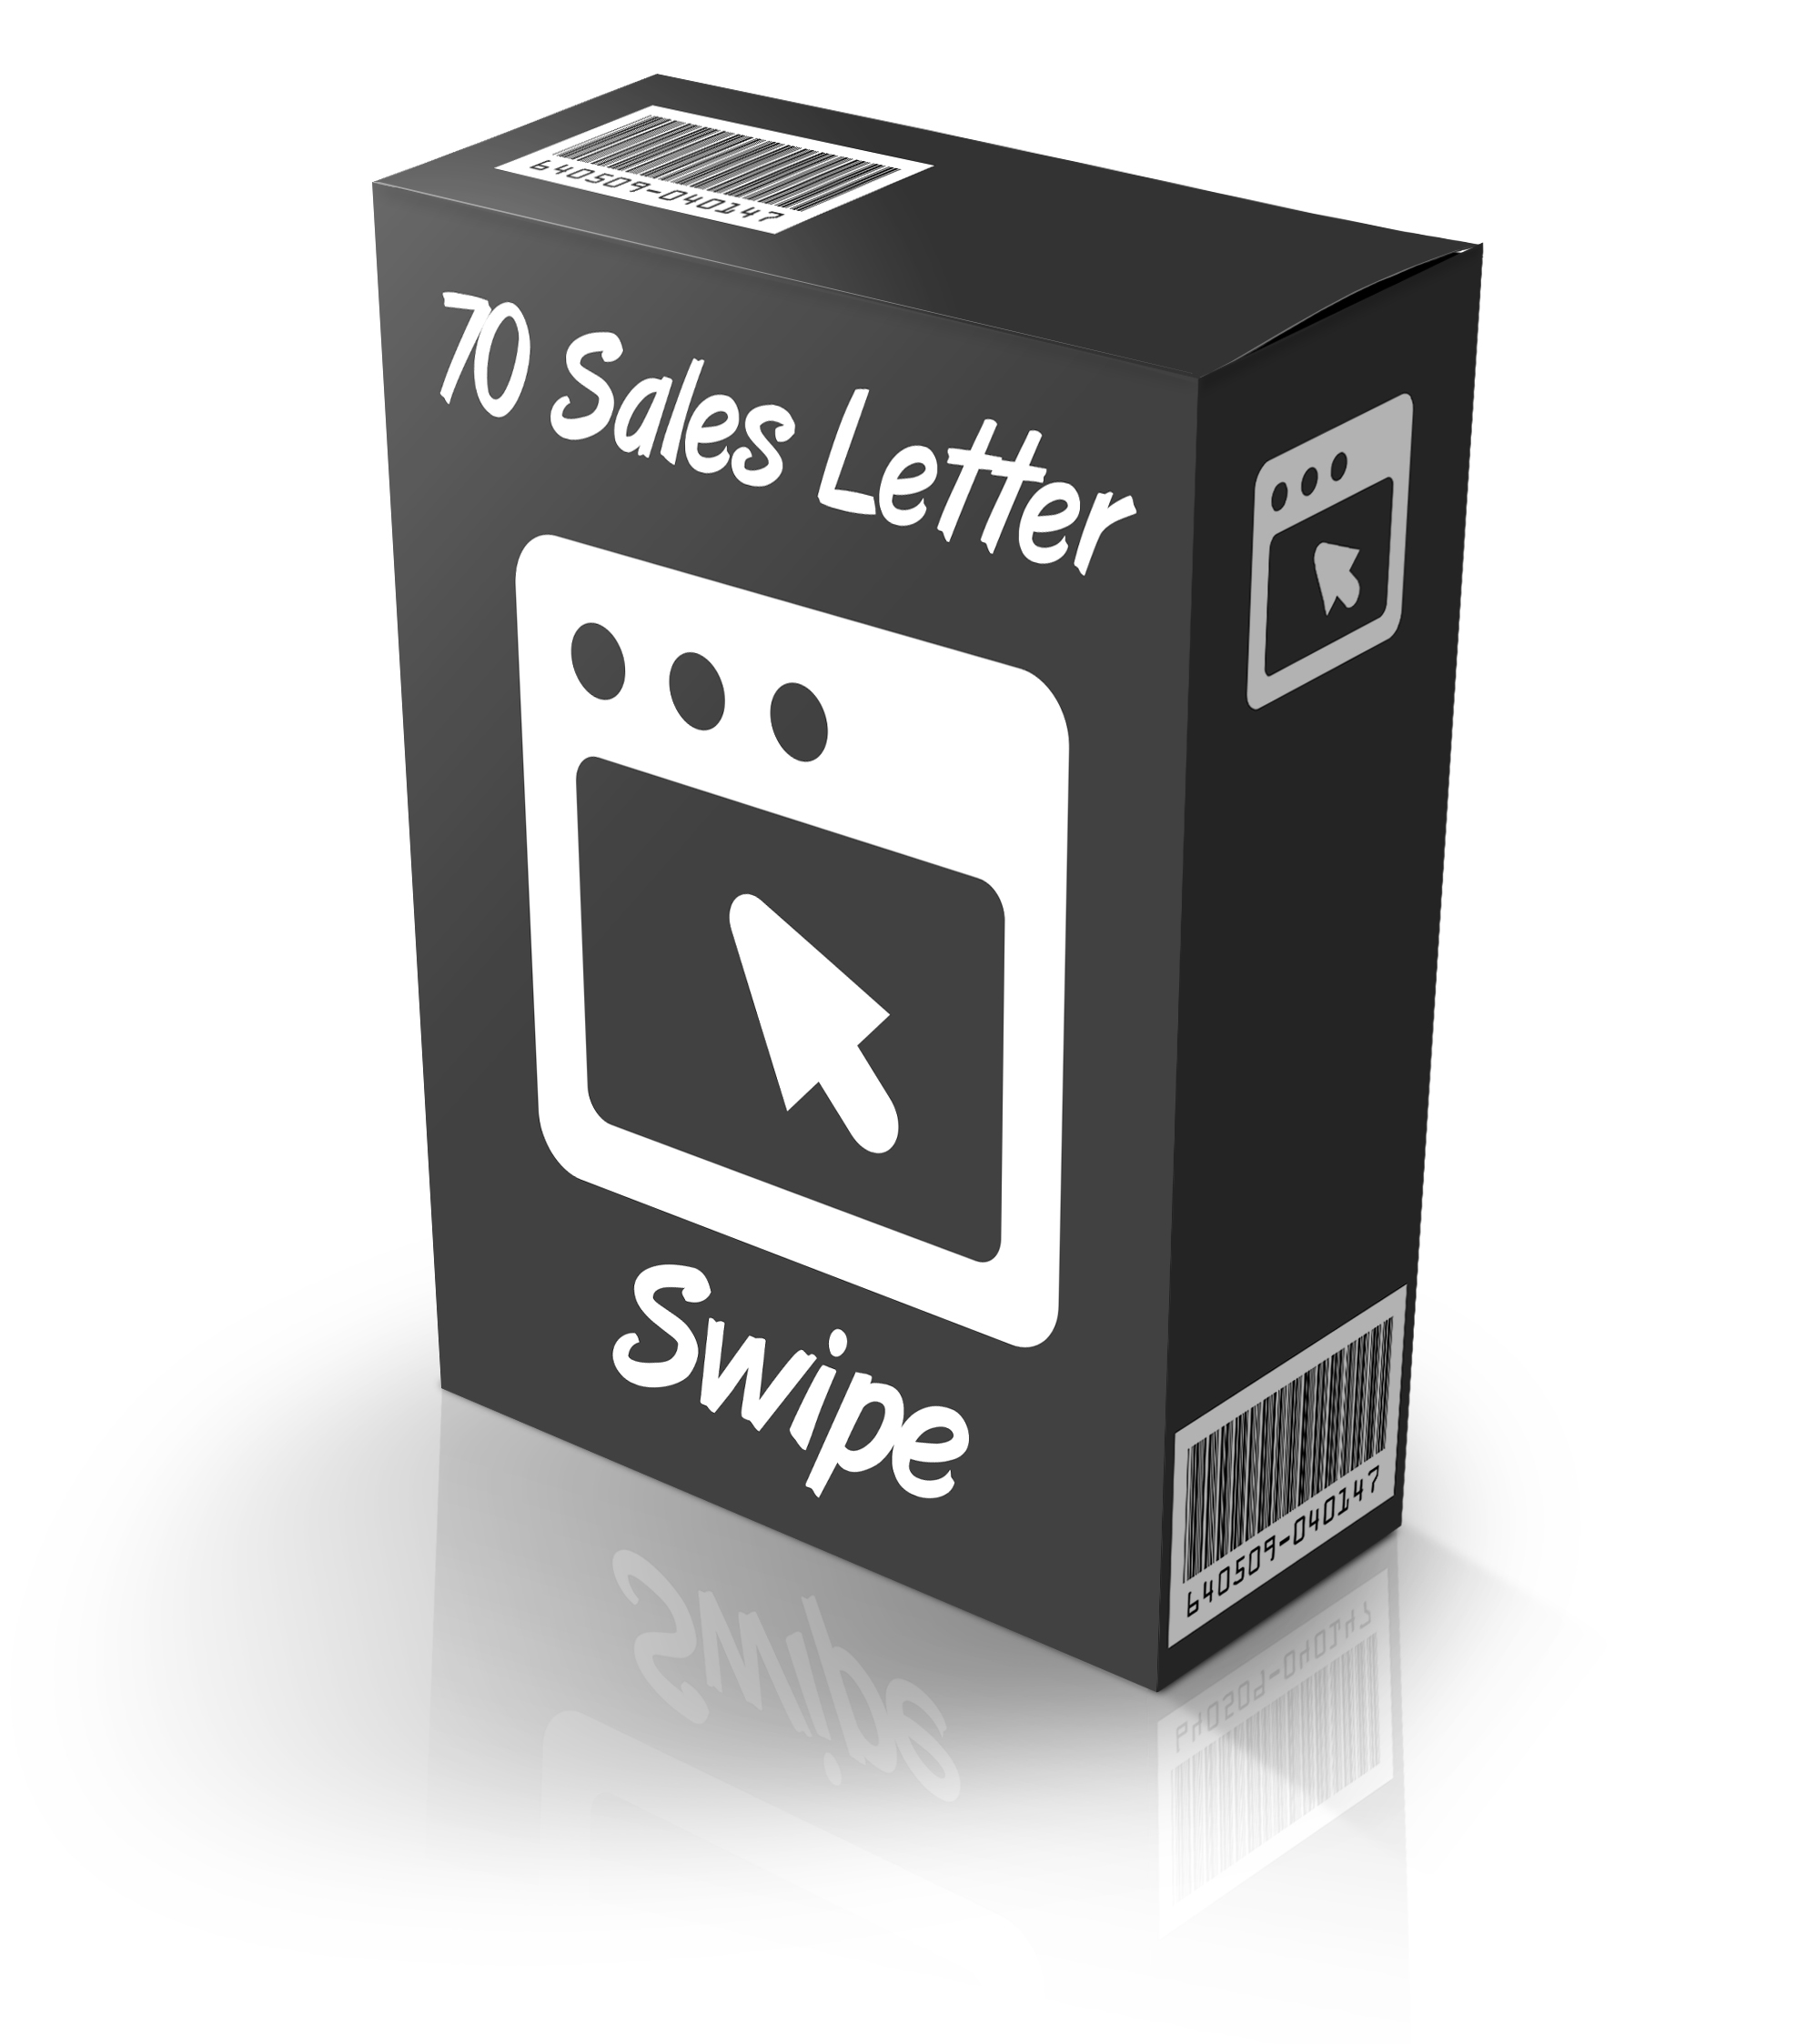 70 Sales Letter Email Swipes Ready For Use